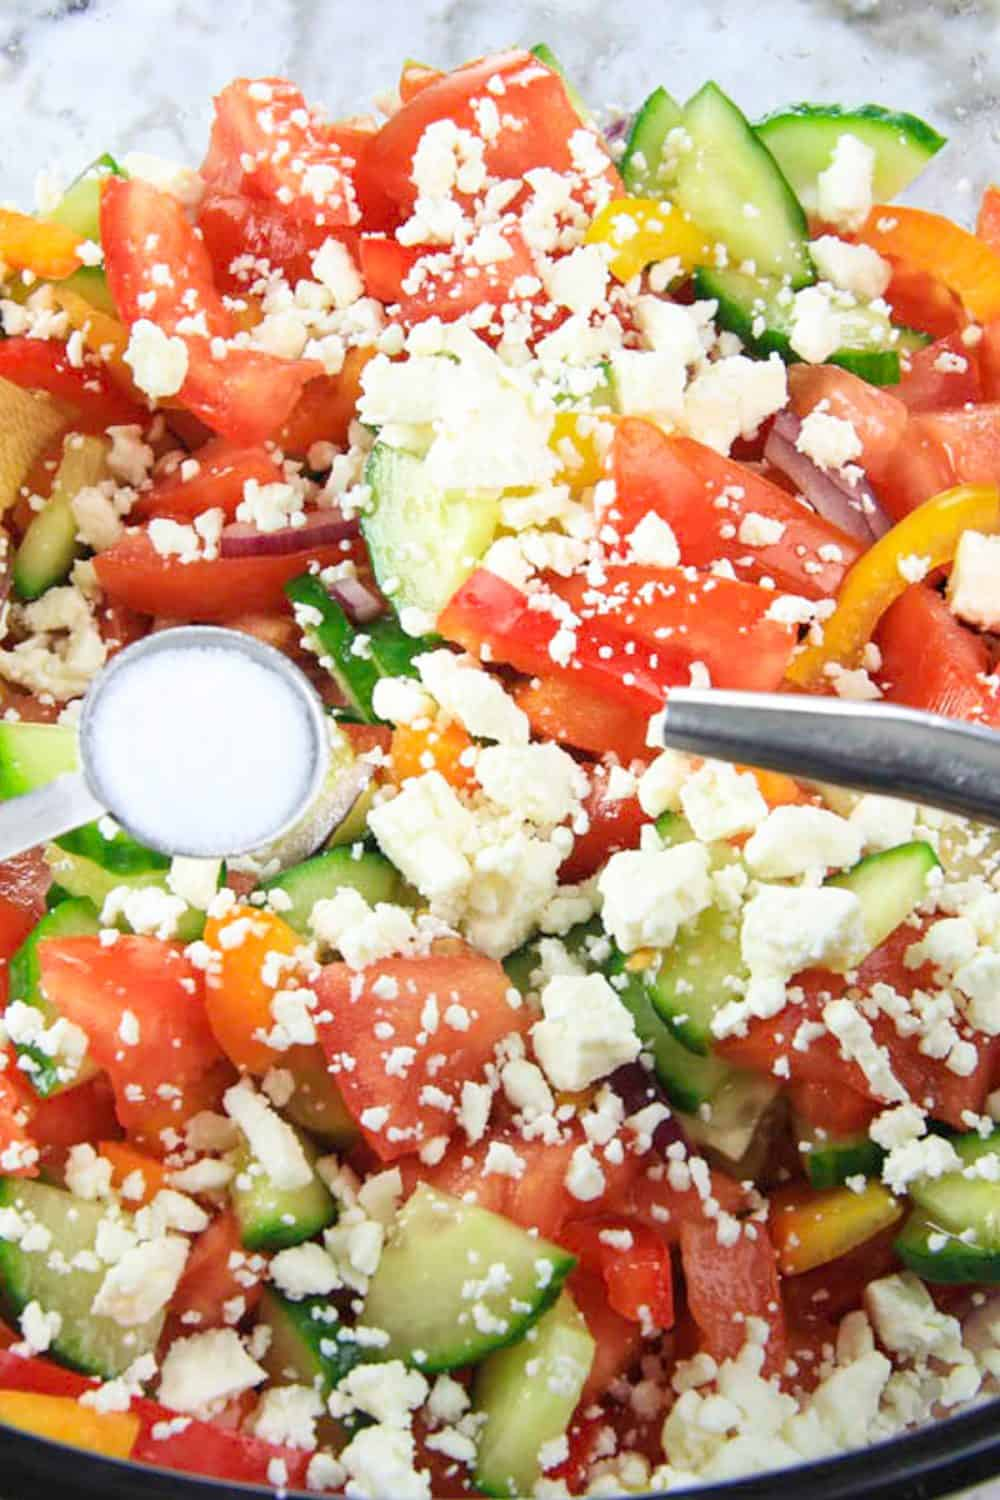 close up image of a salad with cucumbers, tomatoes, bell peppers, and feta cheese on top